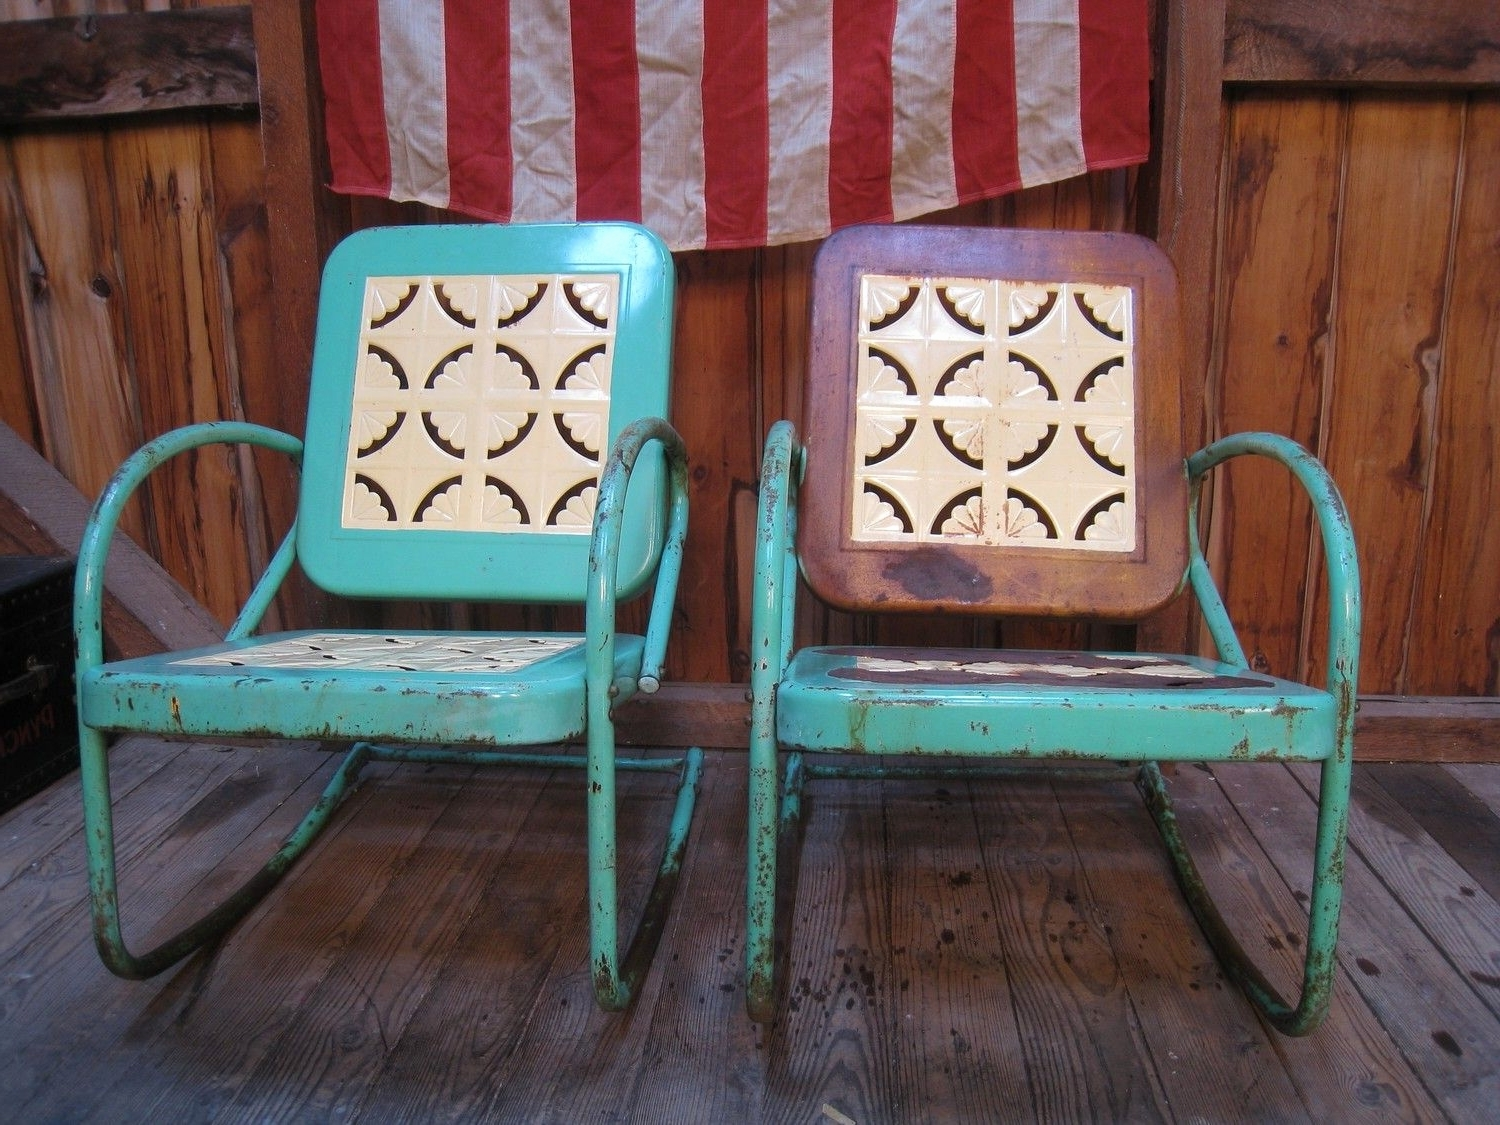 Newest Vintage Metal Rocking Patio Chairs Regarding Outdoor Metal Rocking Chair Awesome Vintage 1950S Metal Lawn Porch (View 7 of 15)